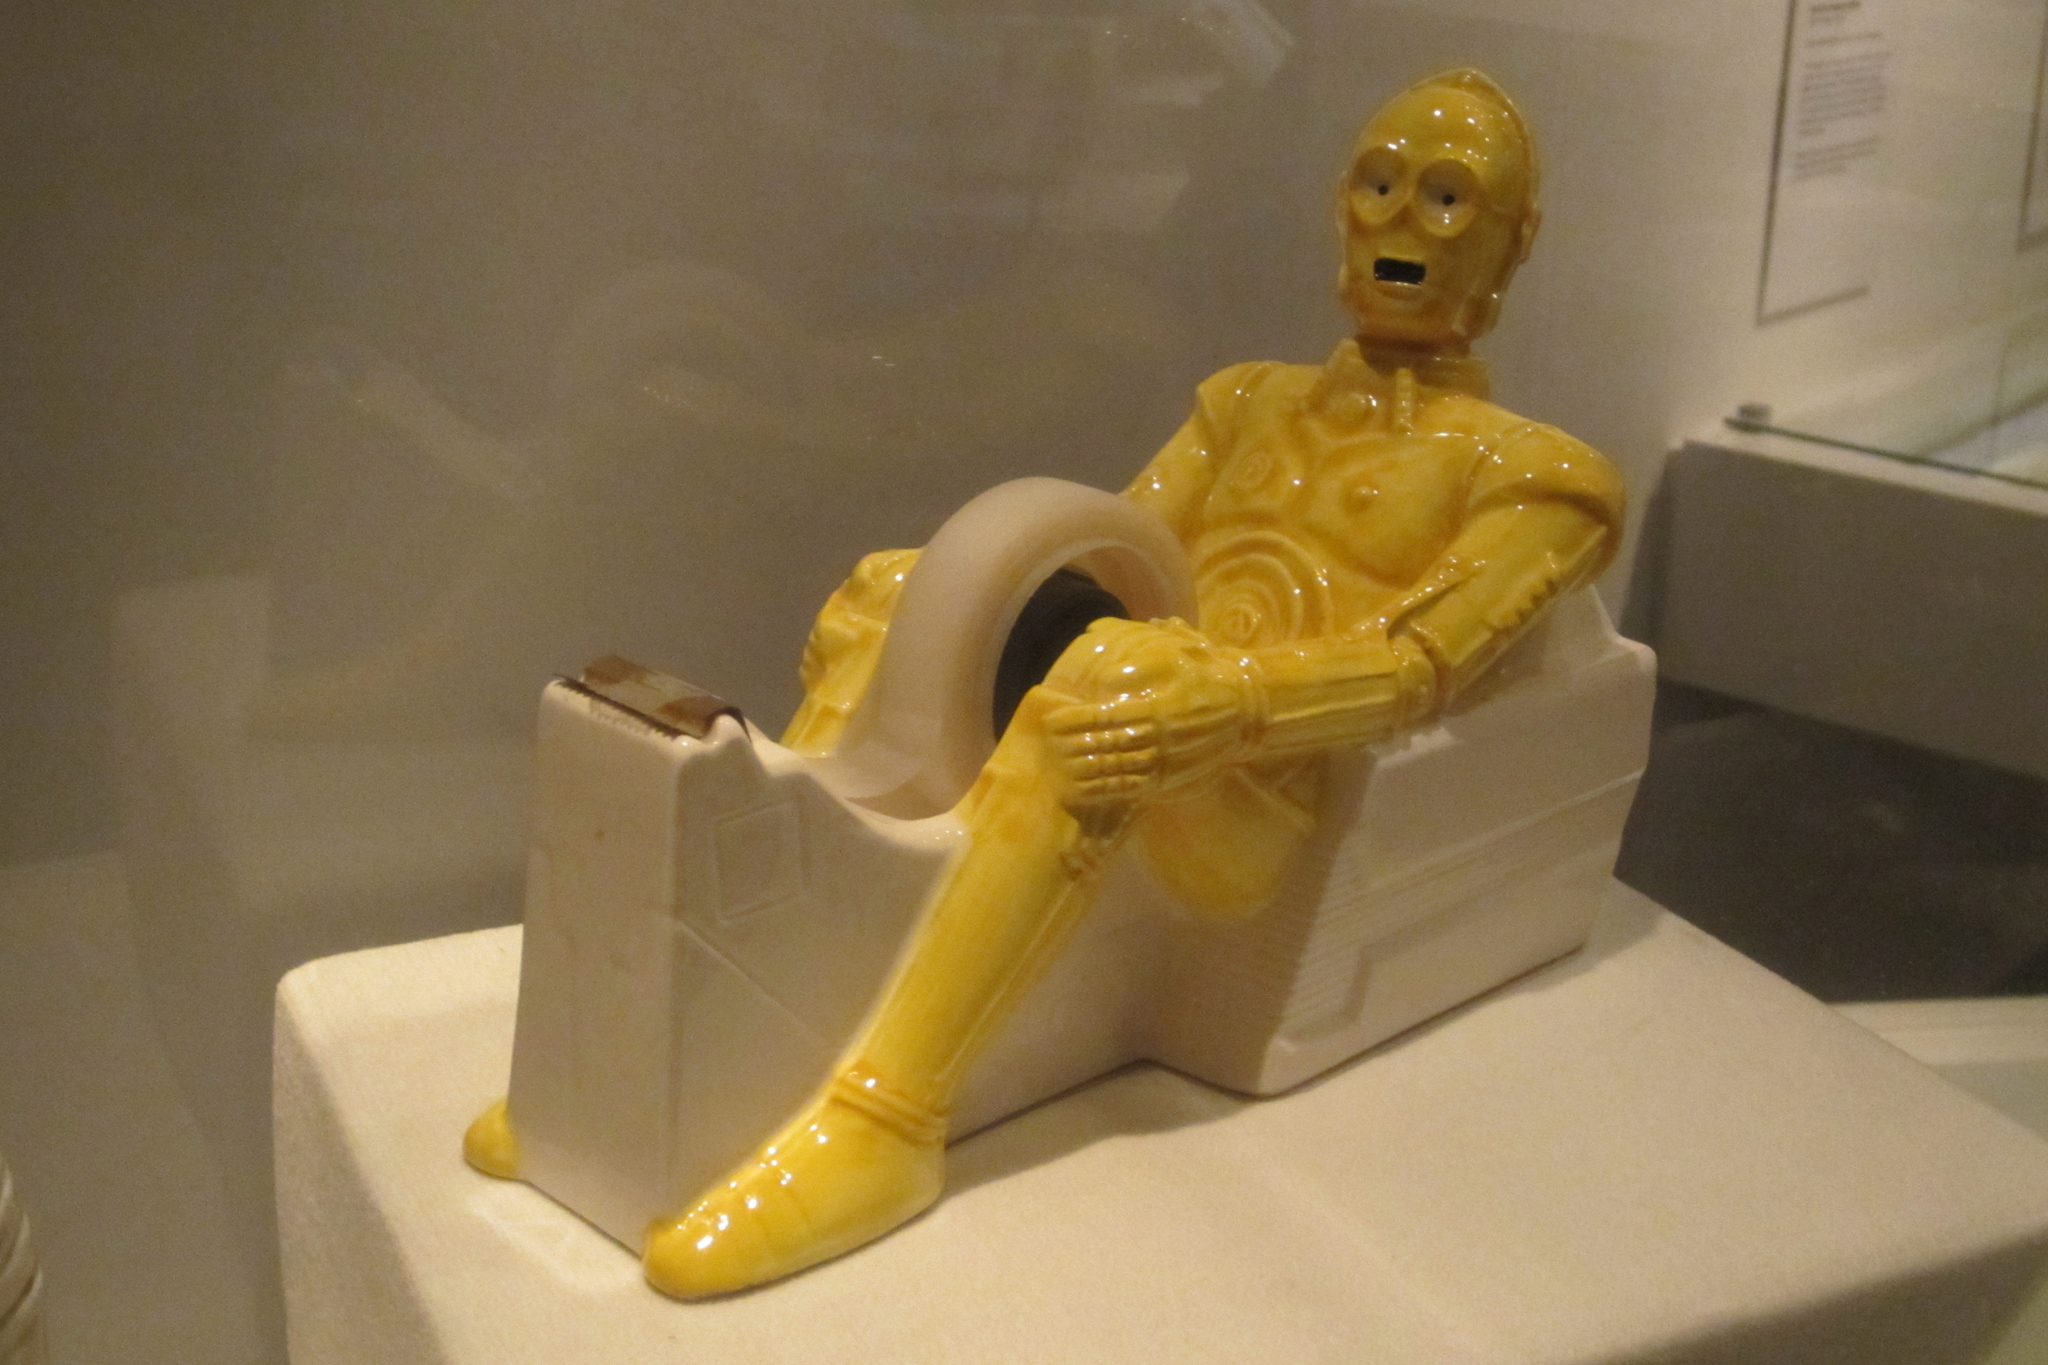 C-3PO tape dispenser at Museum of the Moving Image